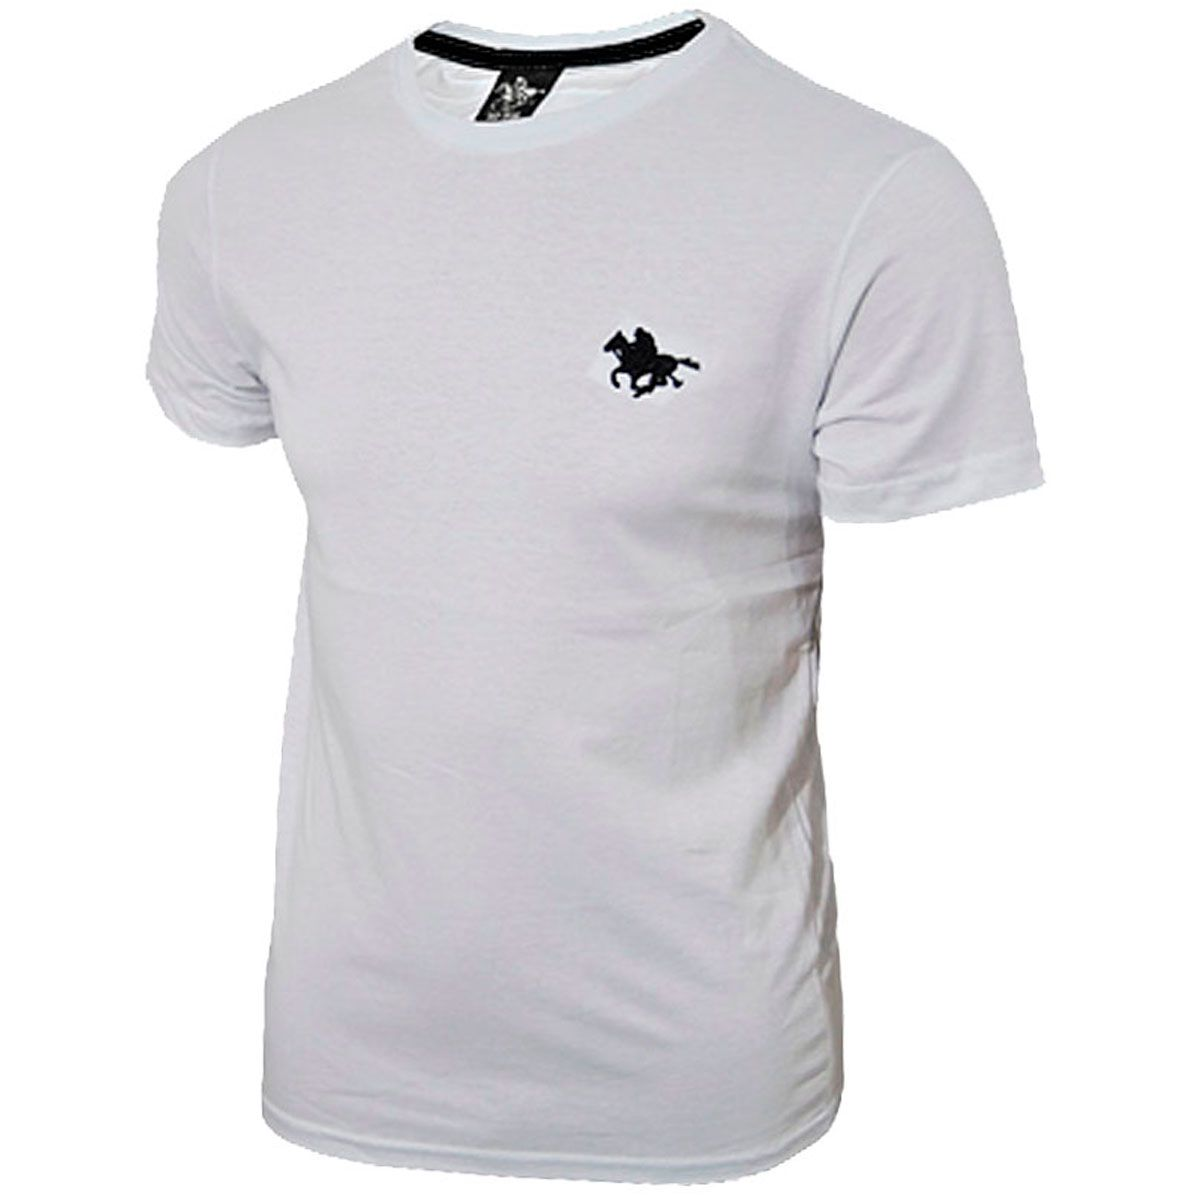 CAMISETA CARECA JUVENIL POLO RG518